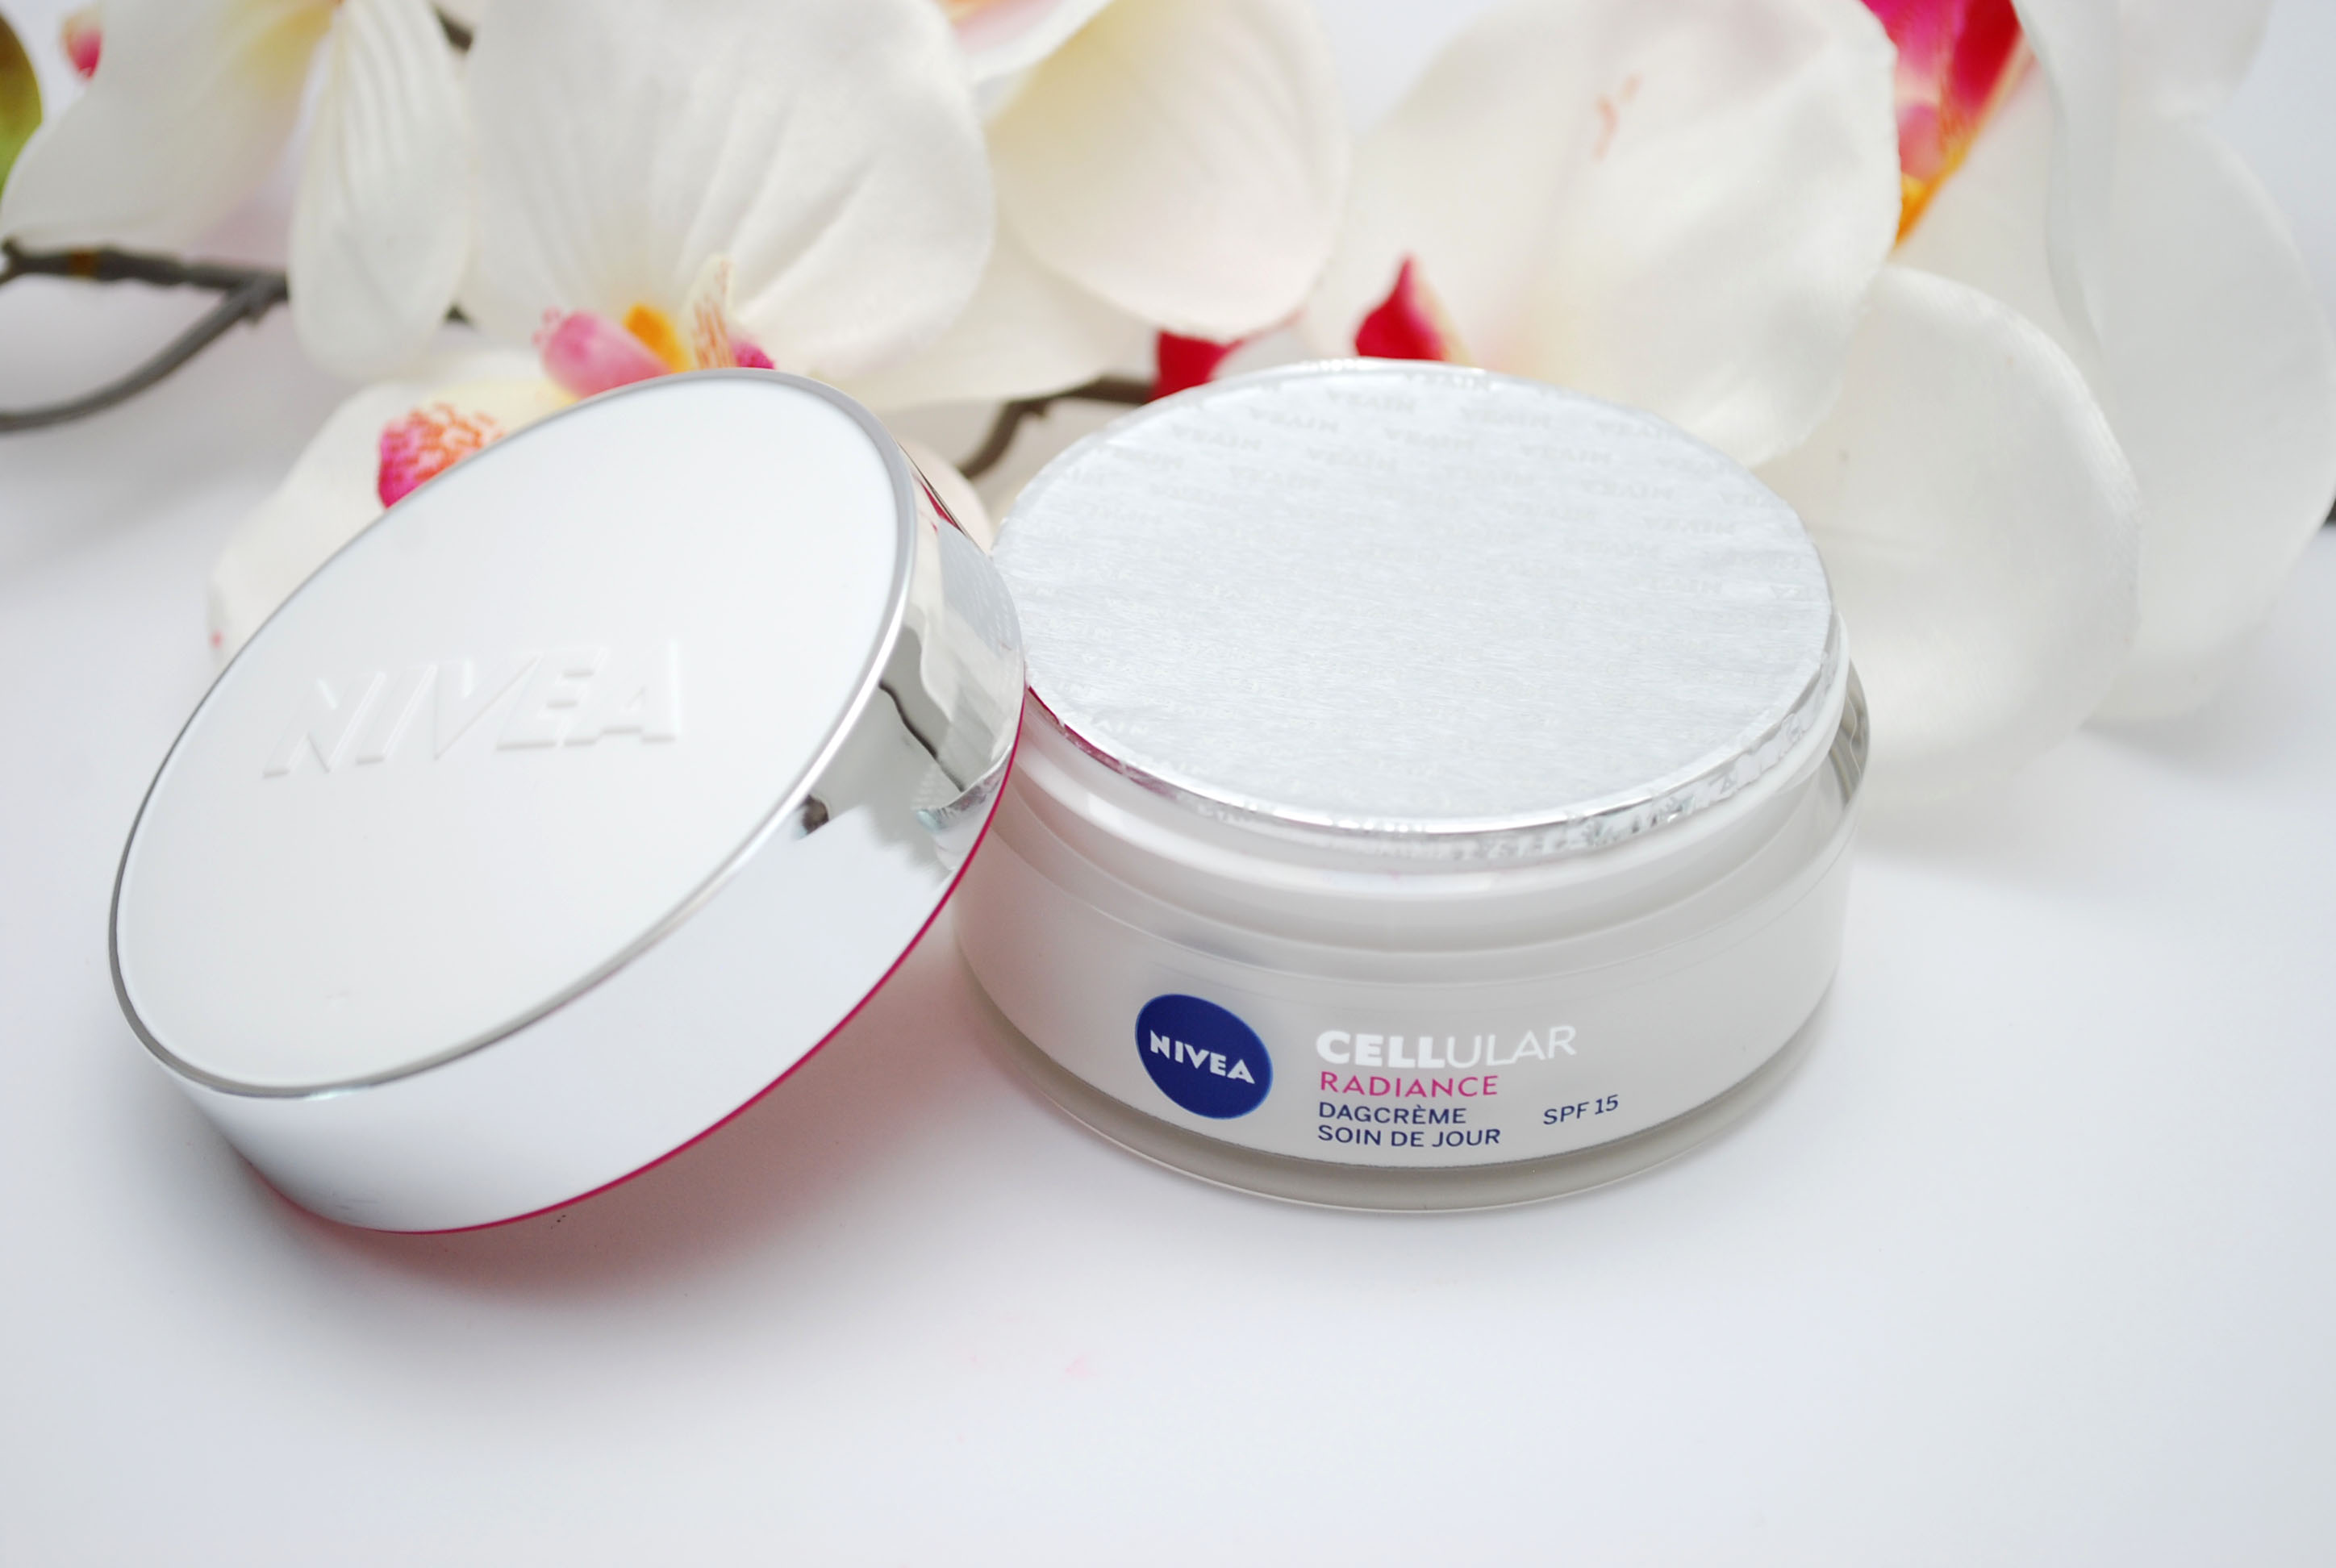 dagcreme nivea cellular ervaring review